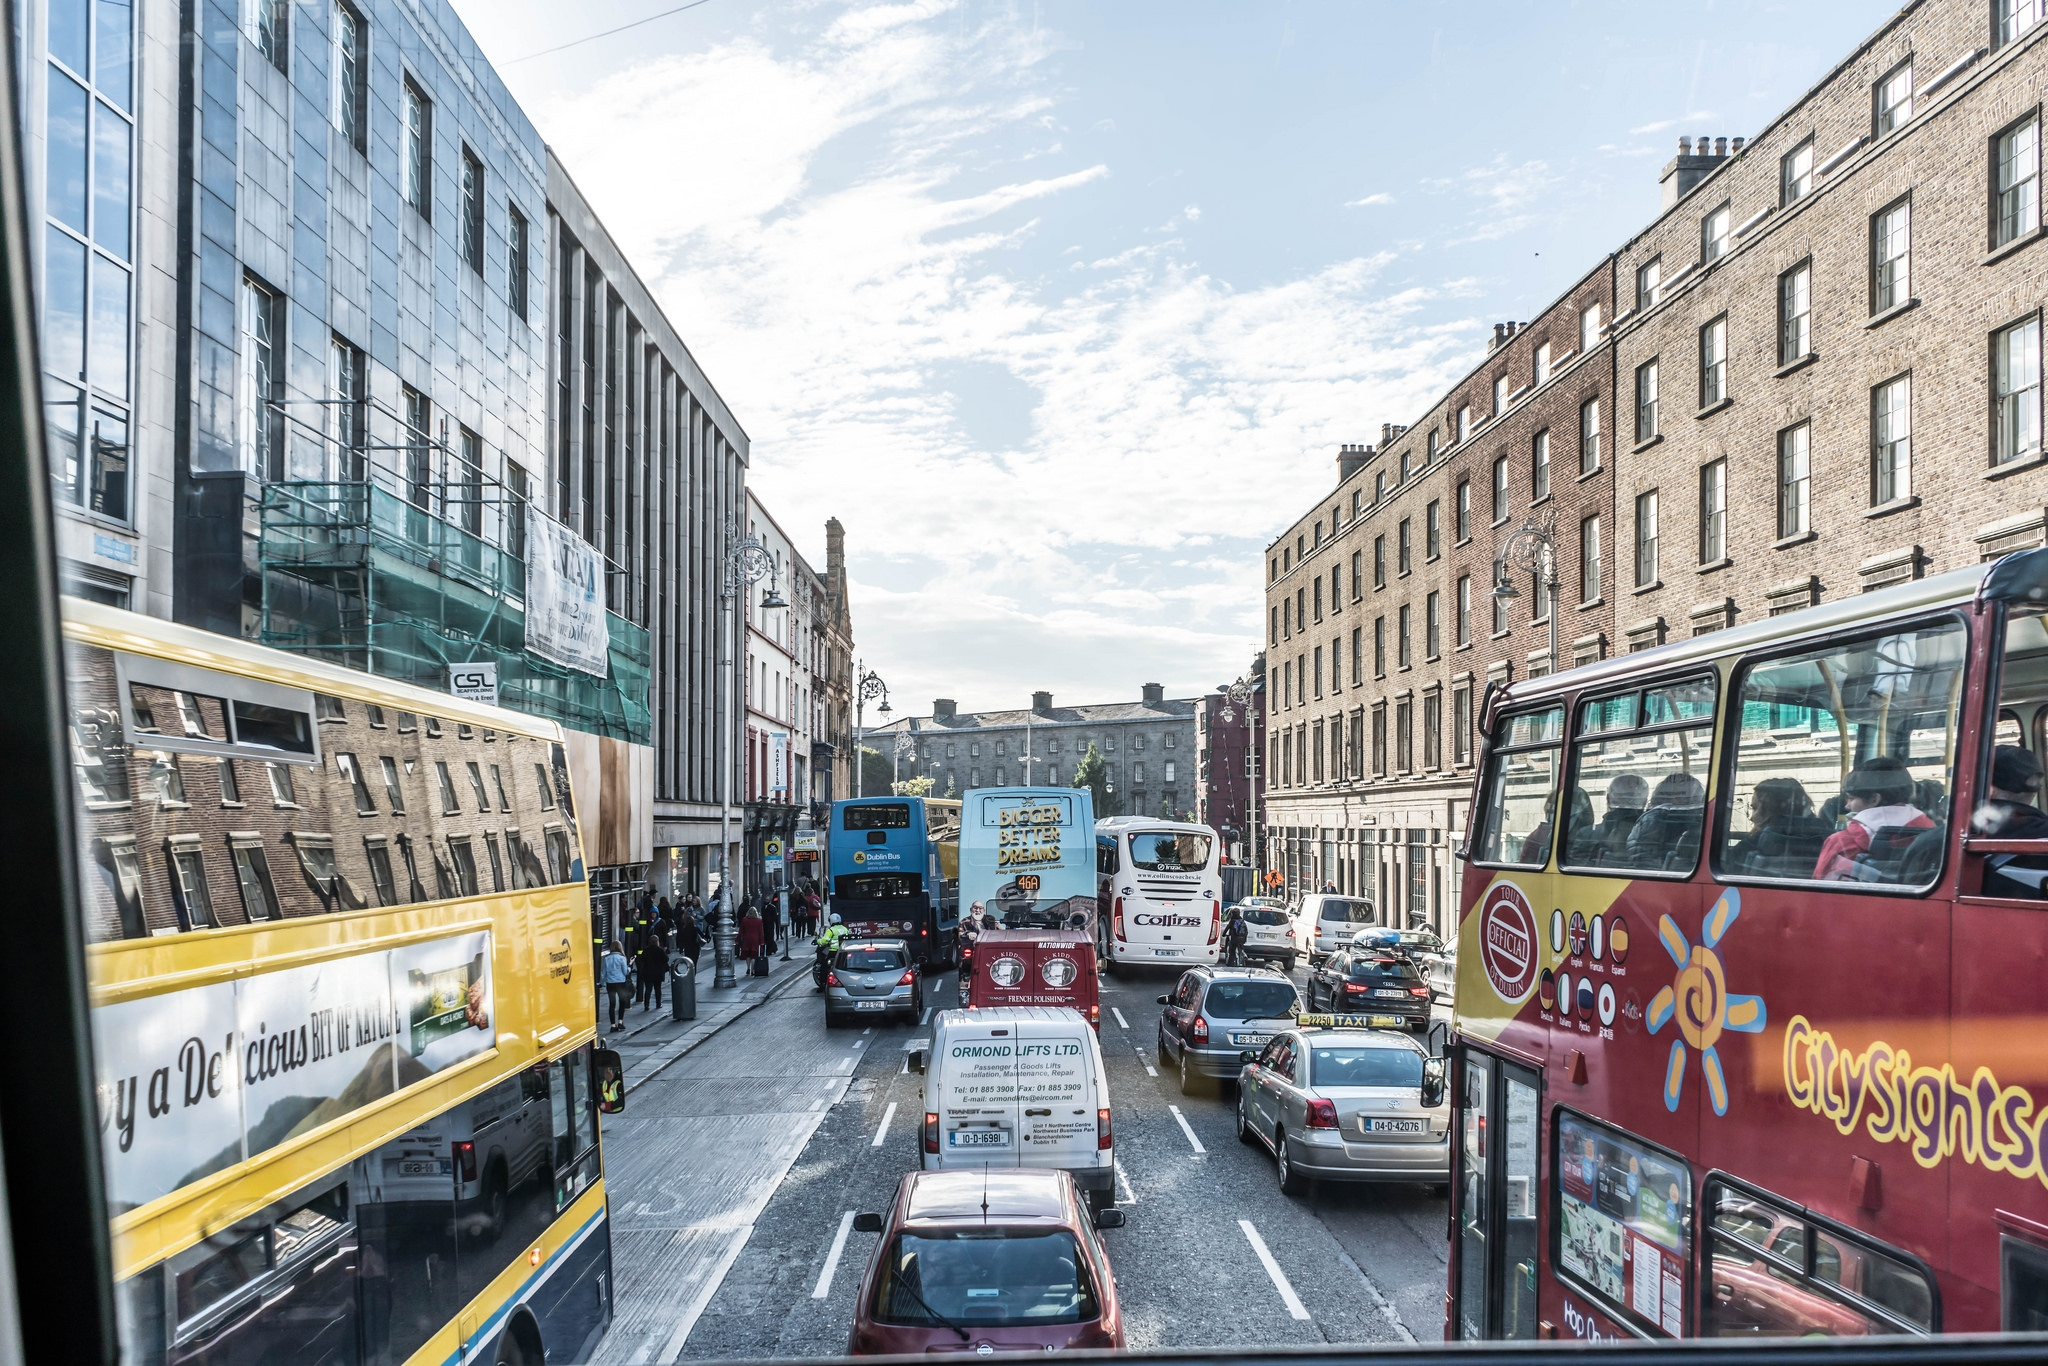 Dublin bus view